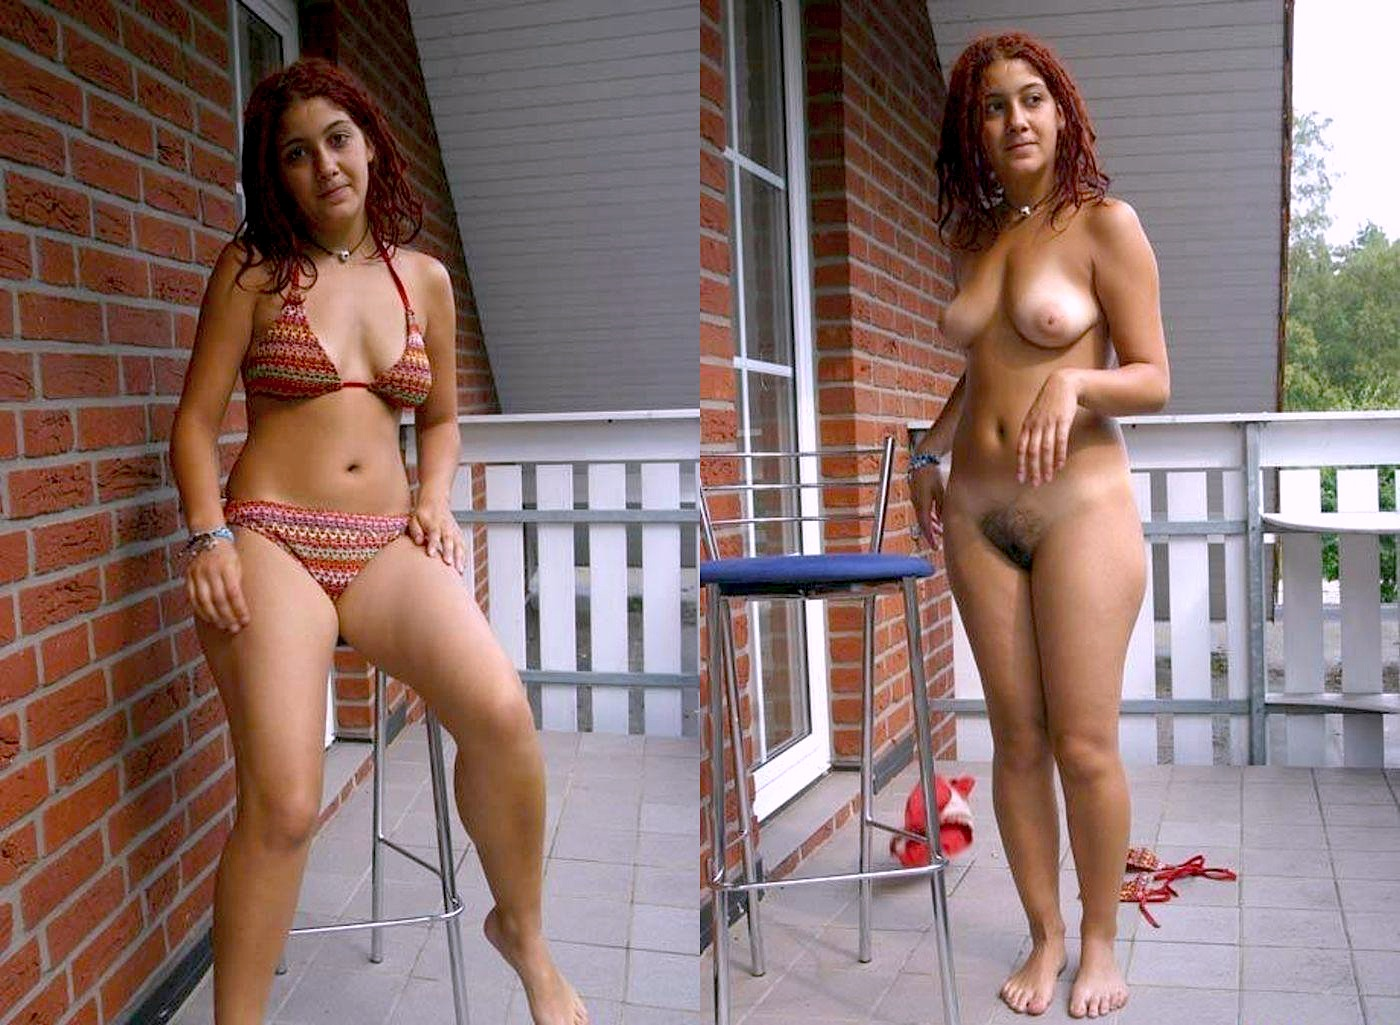 undressed and Amateur swimsuit dressed